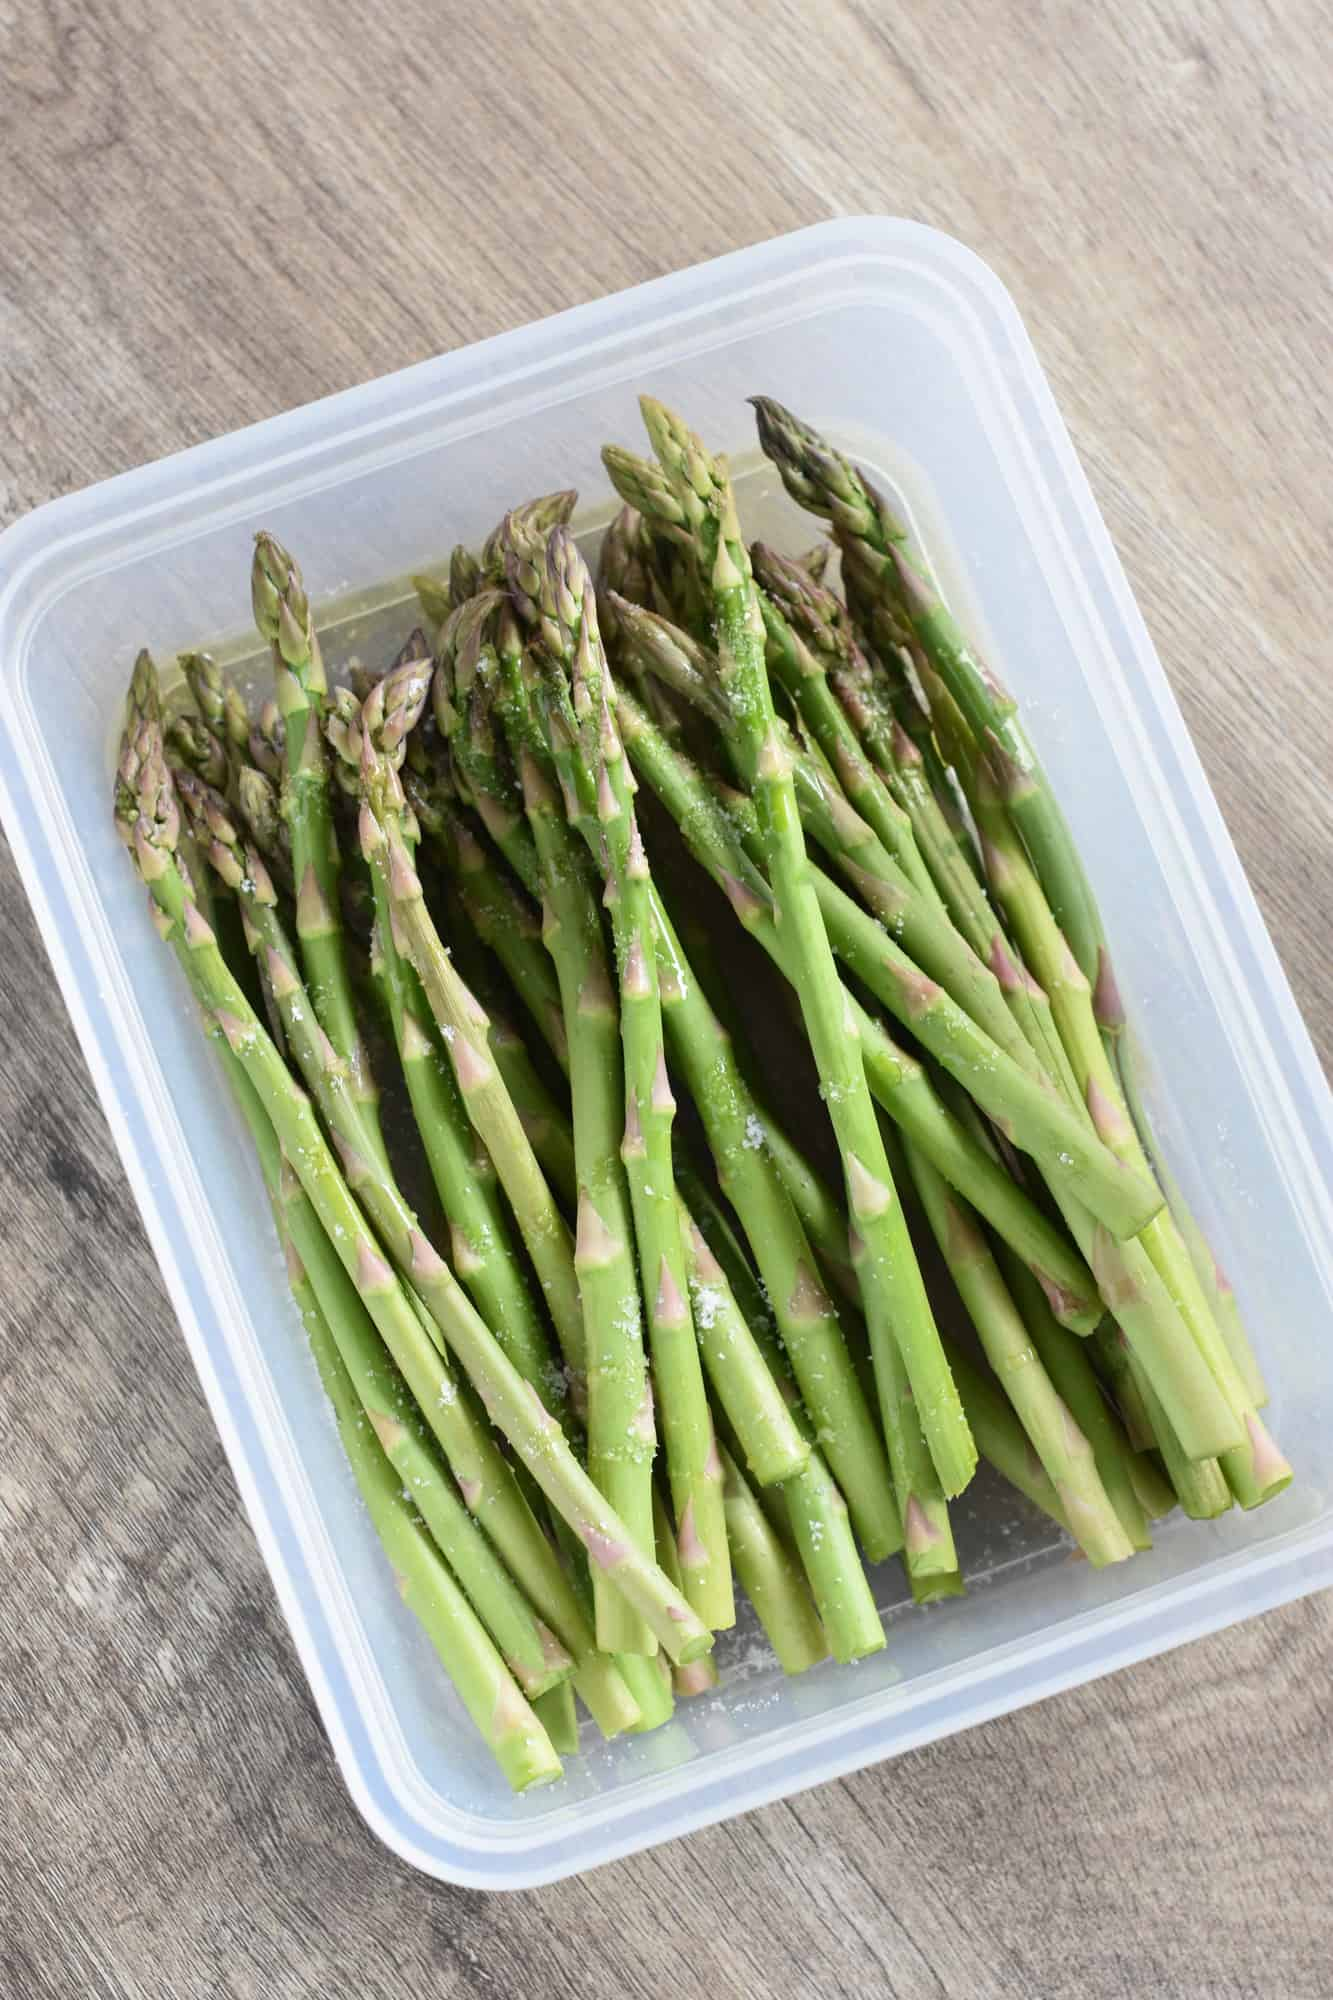 Asparagus in container with olive oil in salt